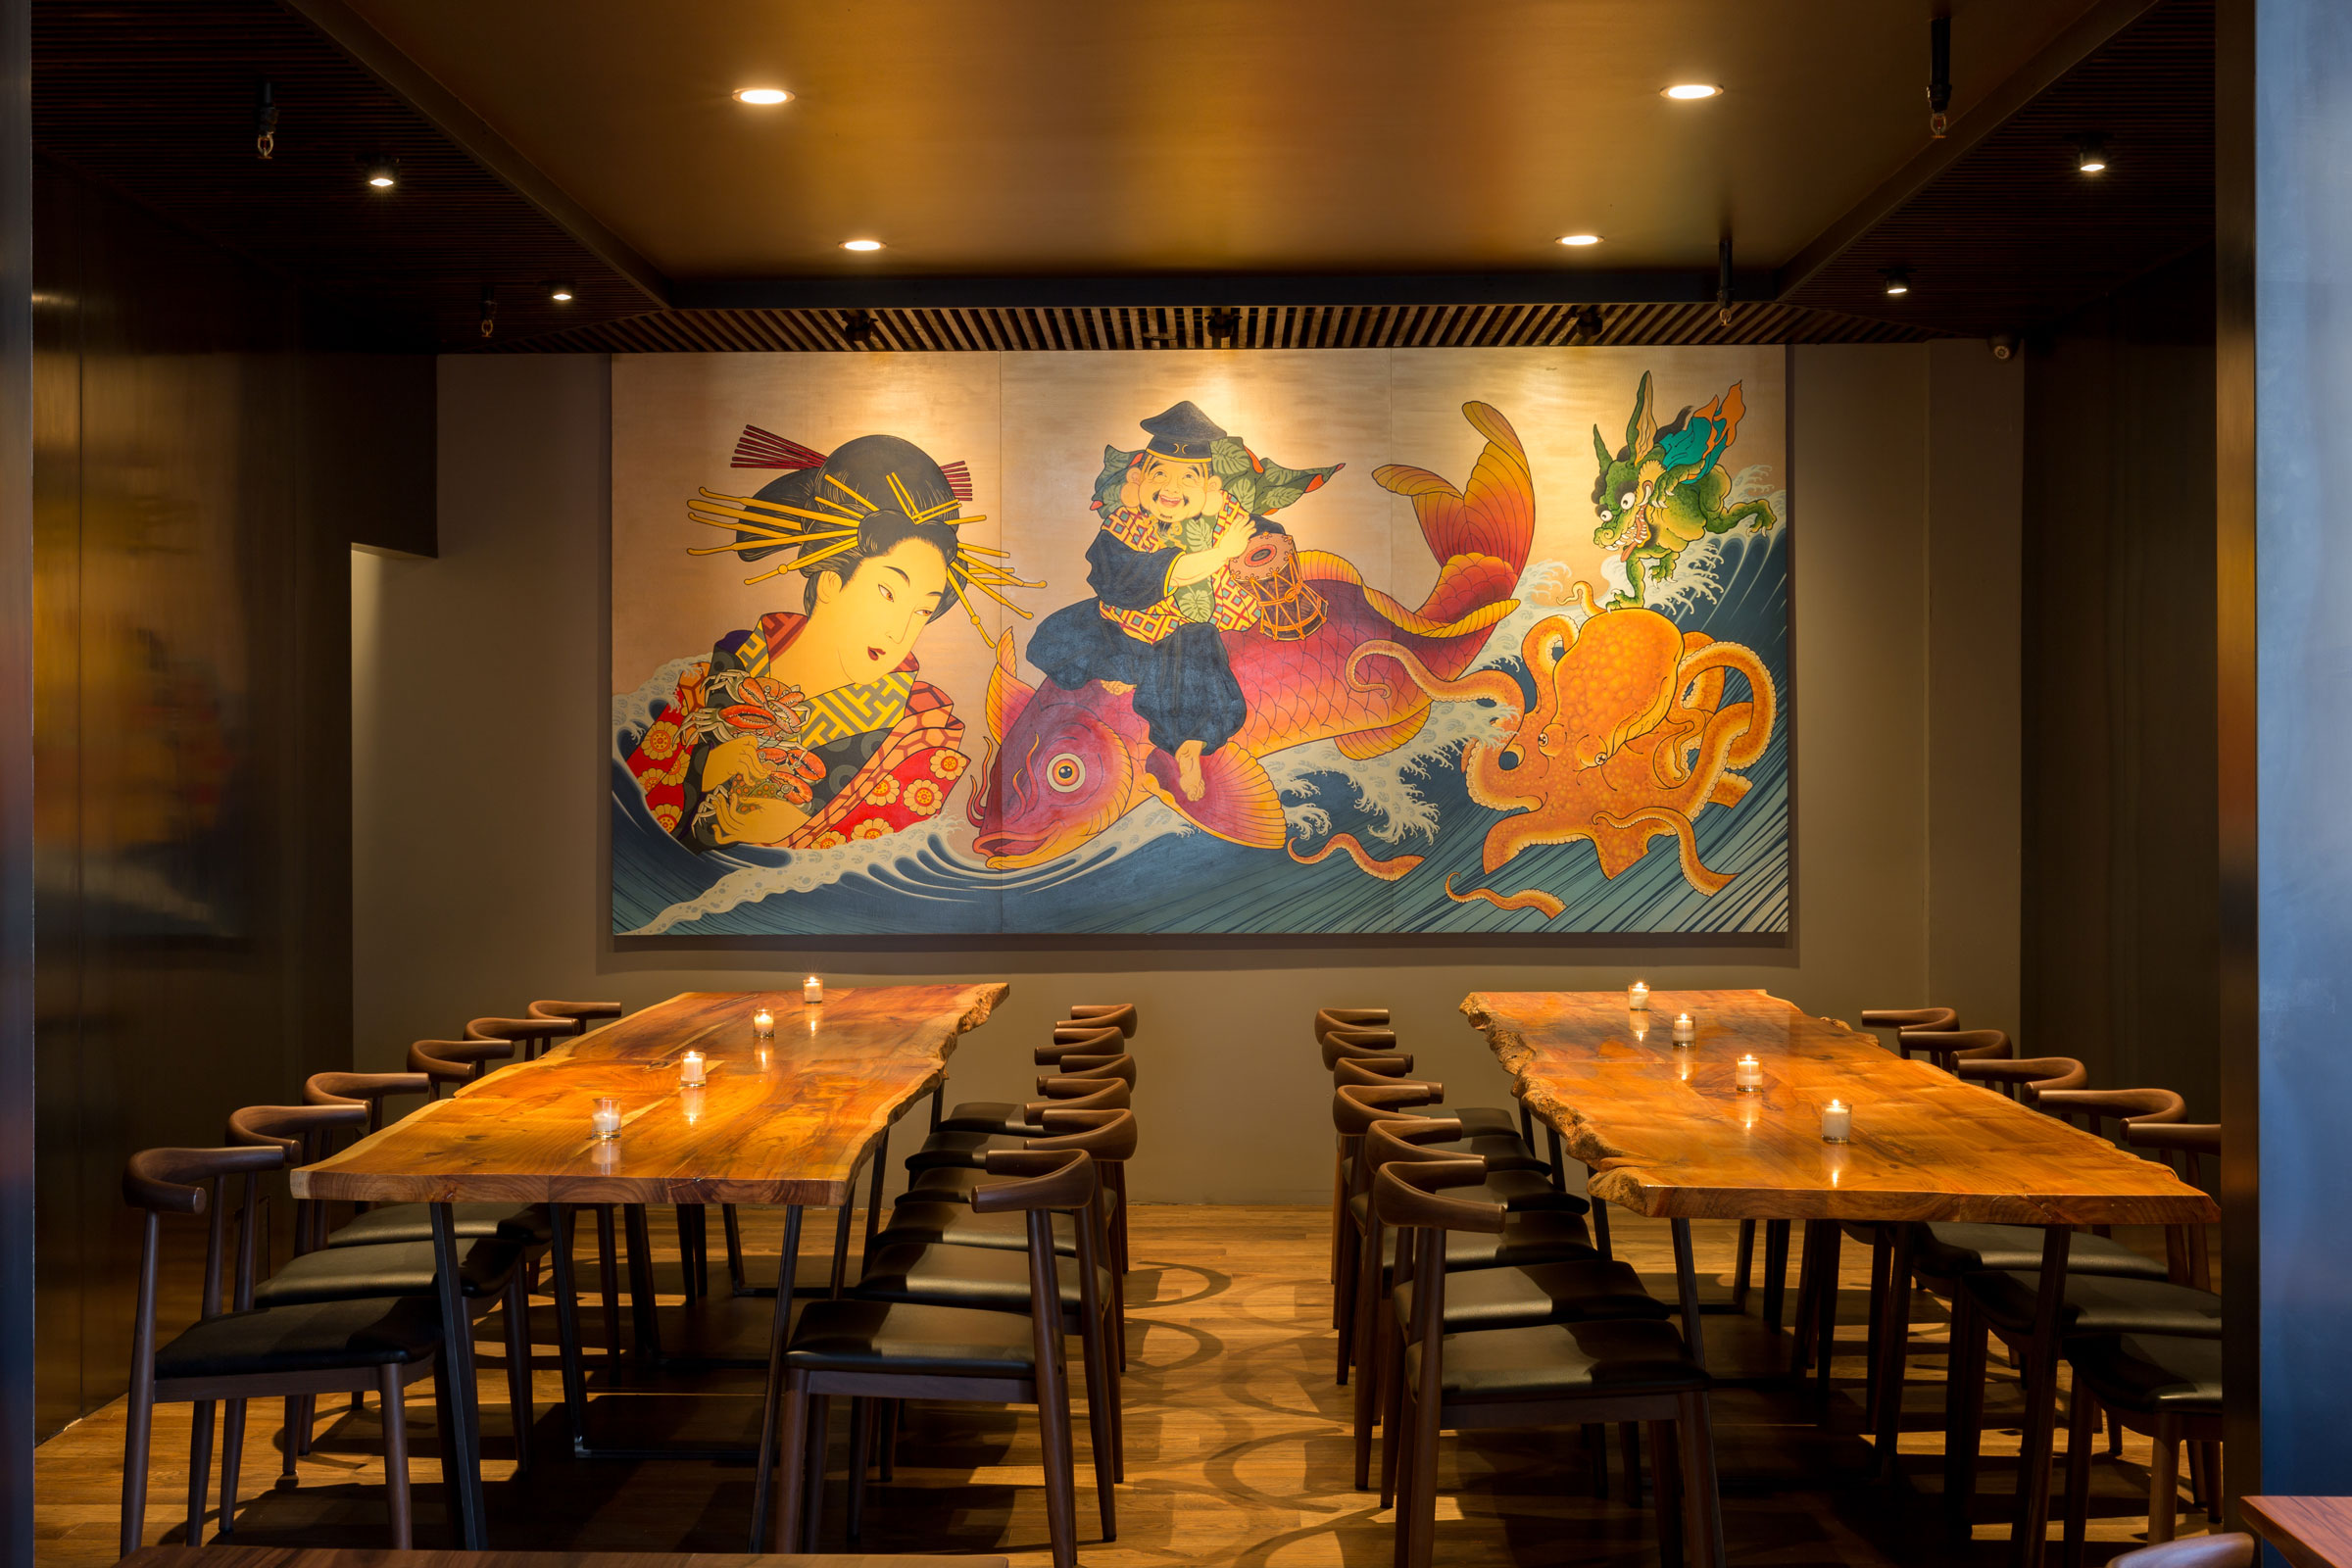 Shinmai Restaurant Dining Area with Large Artwork Buestad Construction